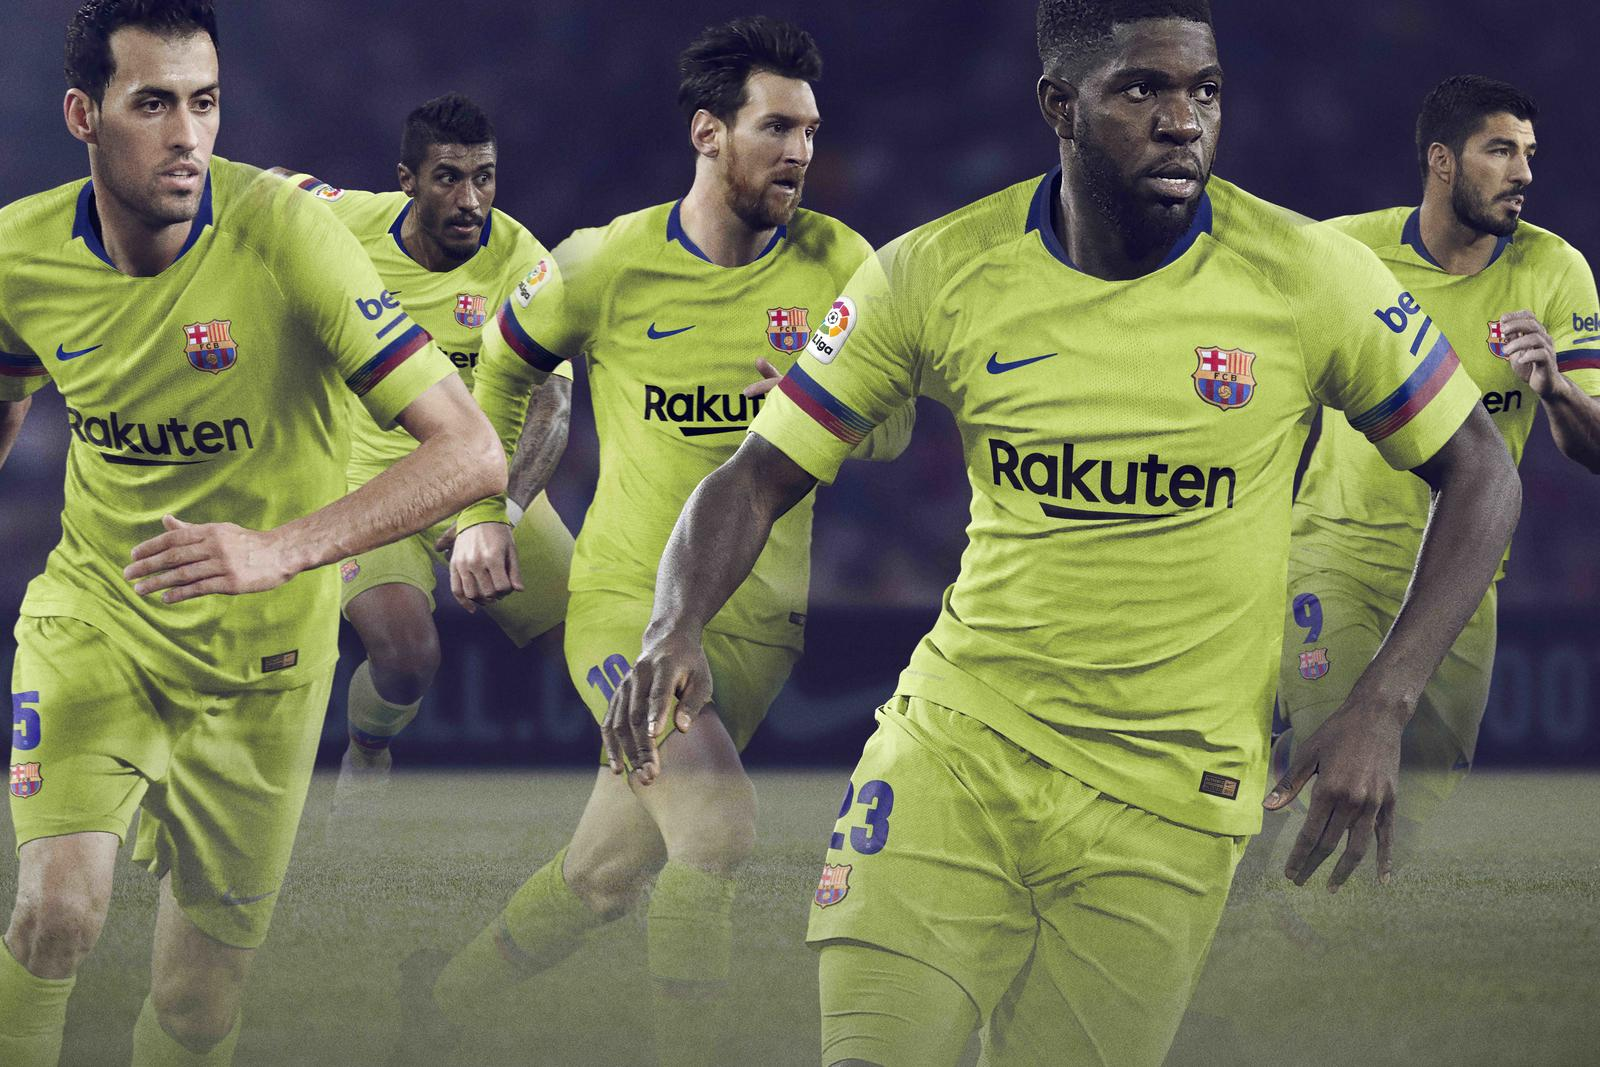 Fc barcelona away kit 2018 19 nike news fc barcelonas latest away kit revels in a daring history stopboris Choice Image